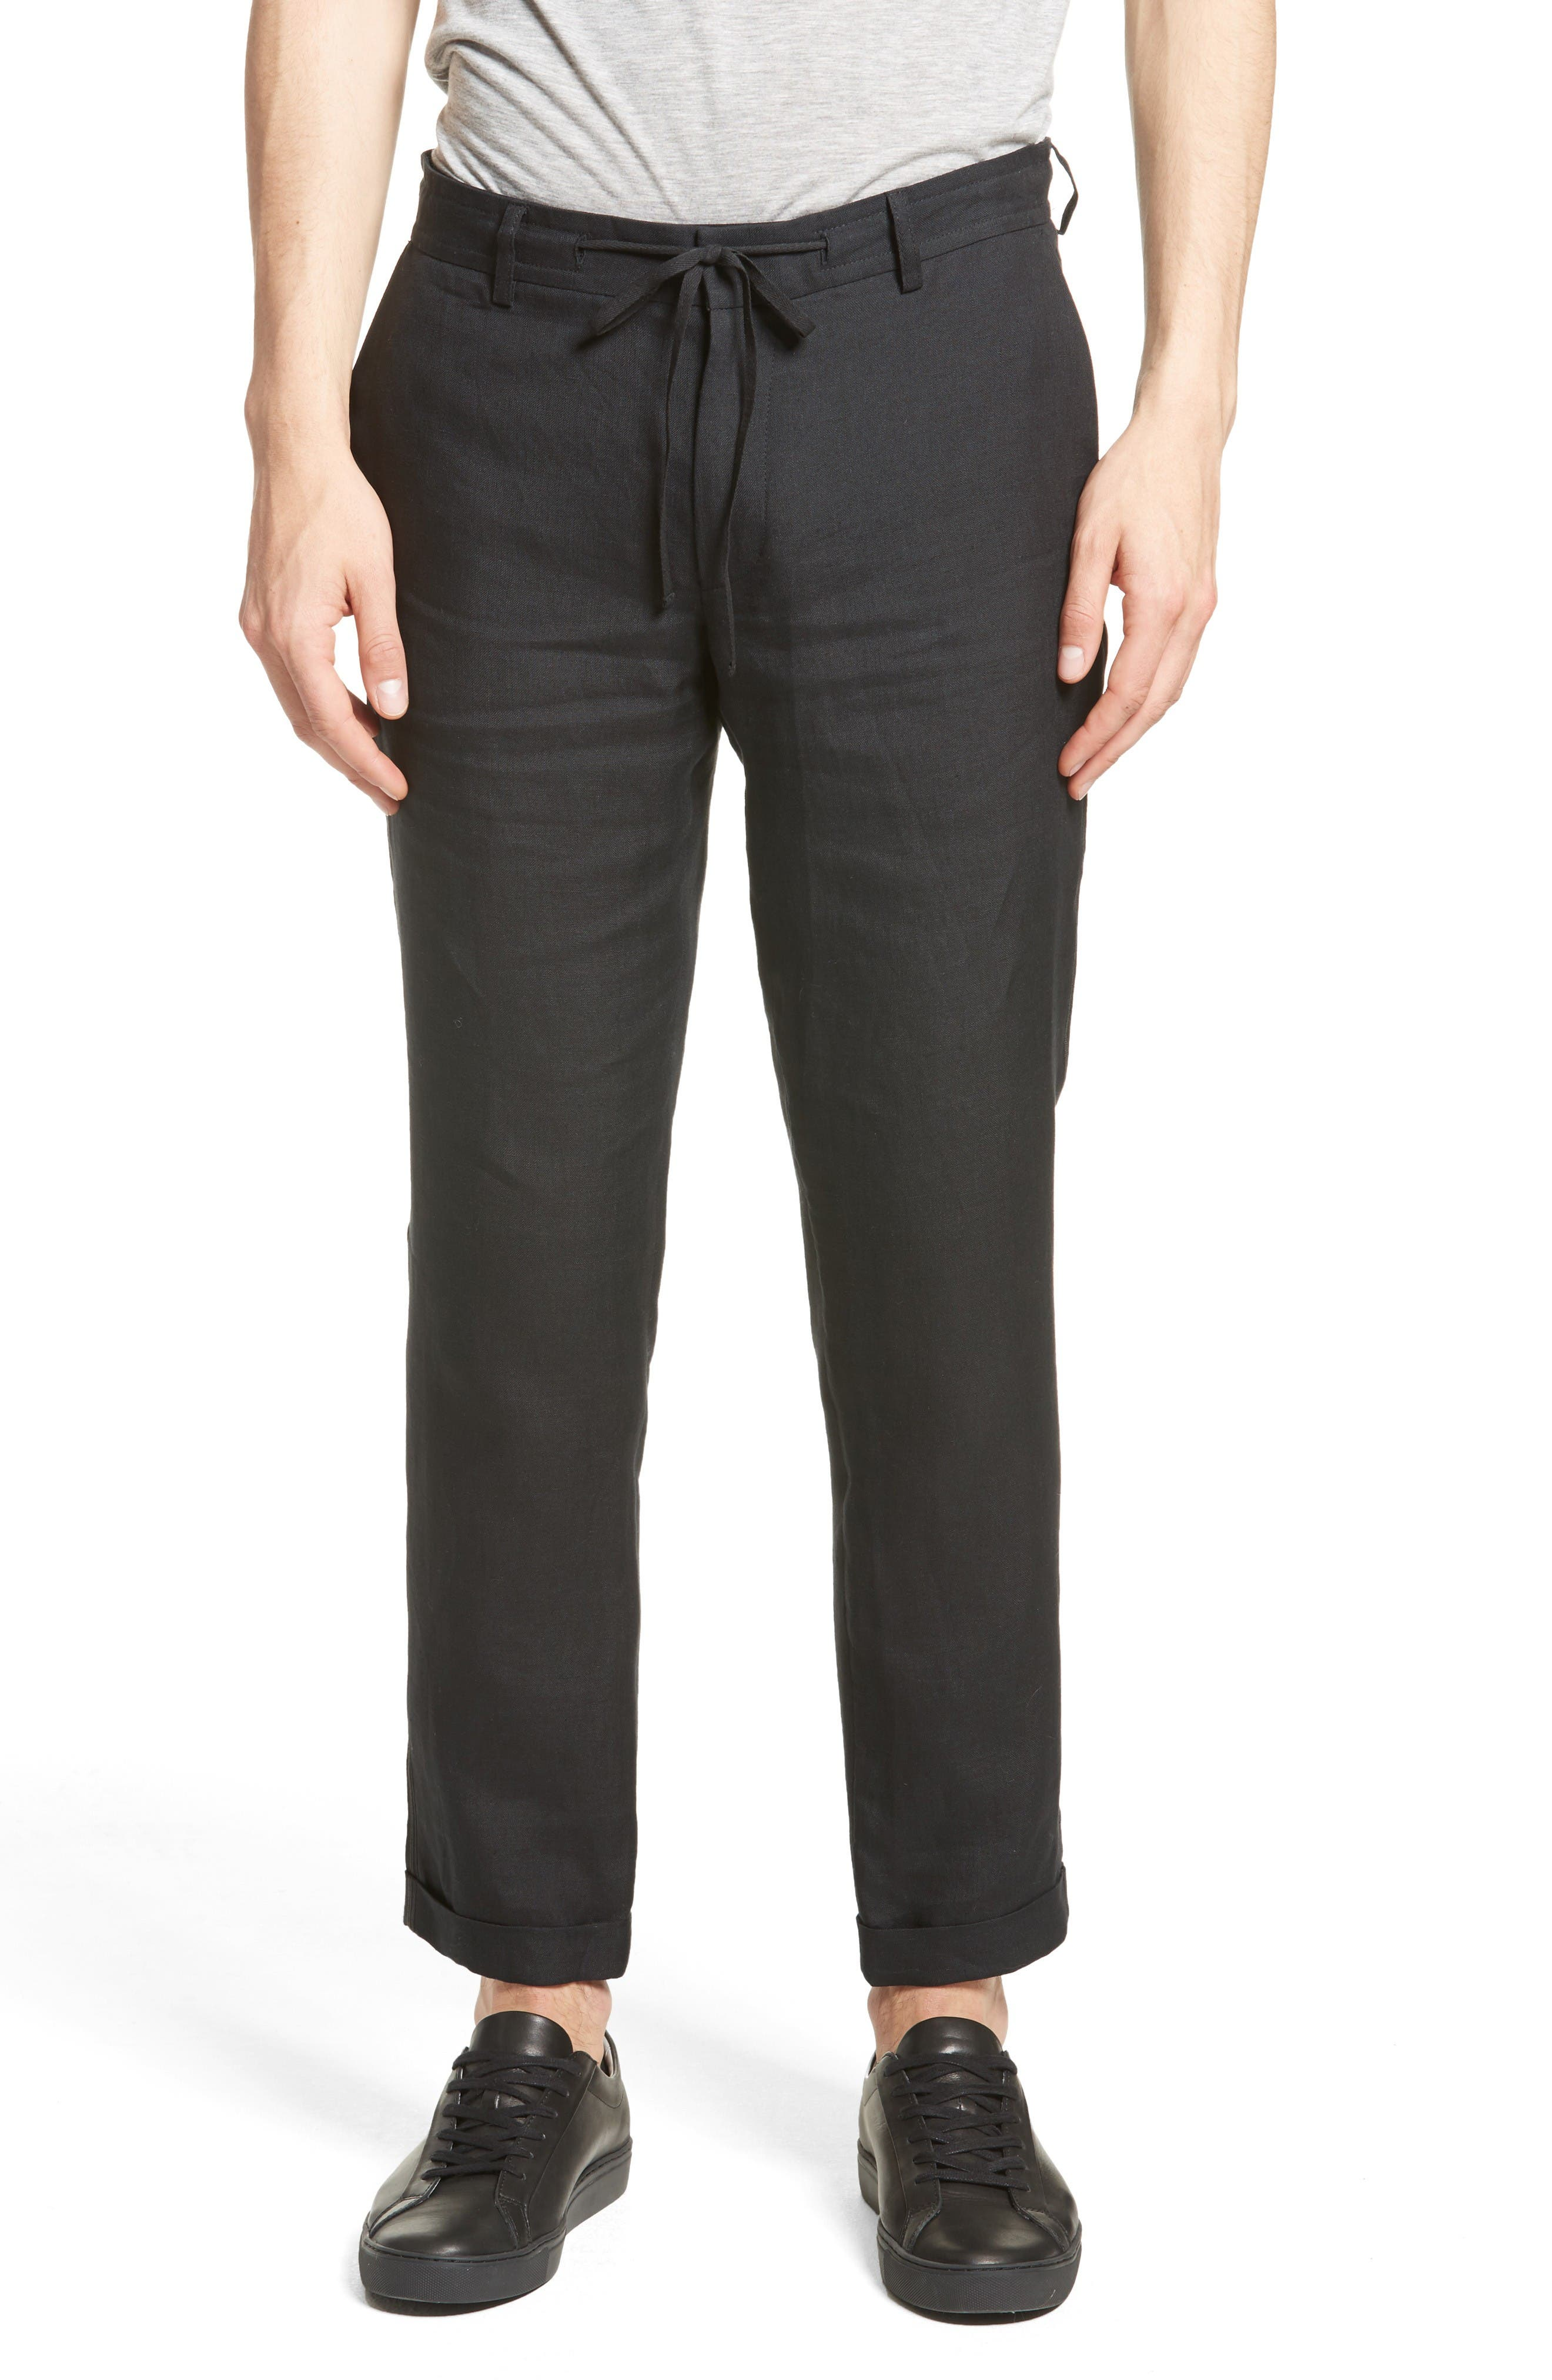 Alternate Image 1 Selected - The Kooples Relaxed Fit Linen Pants